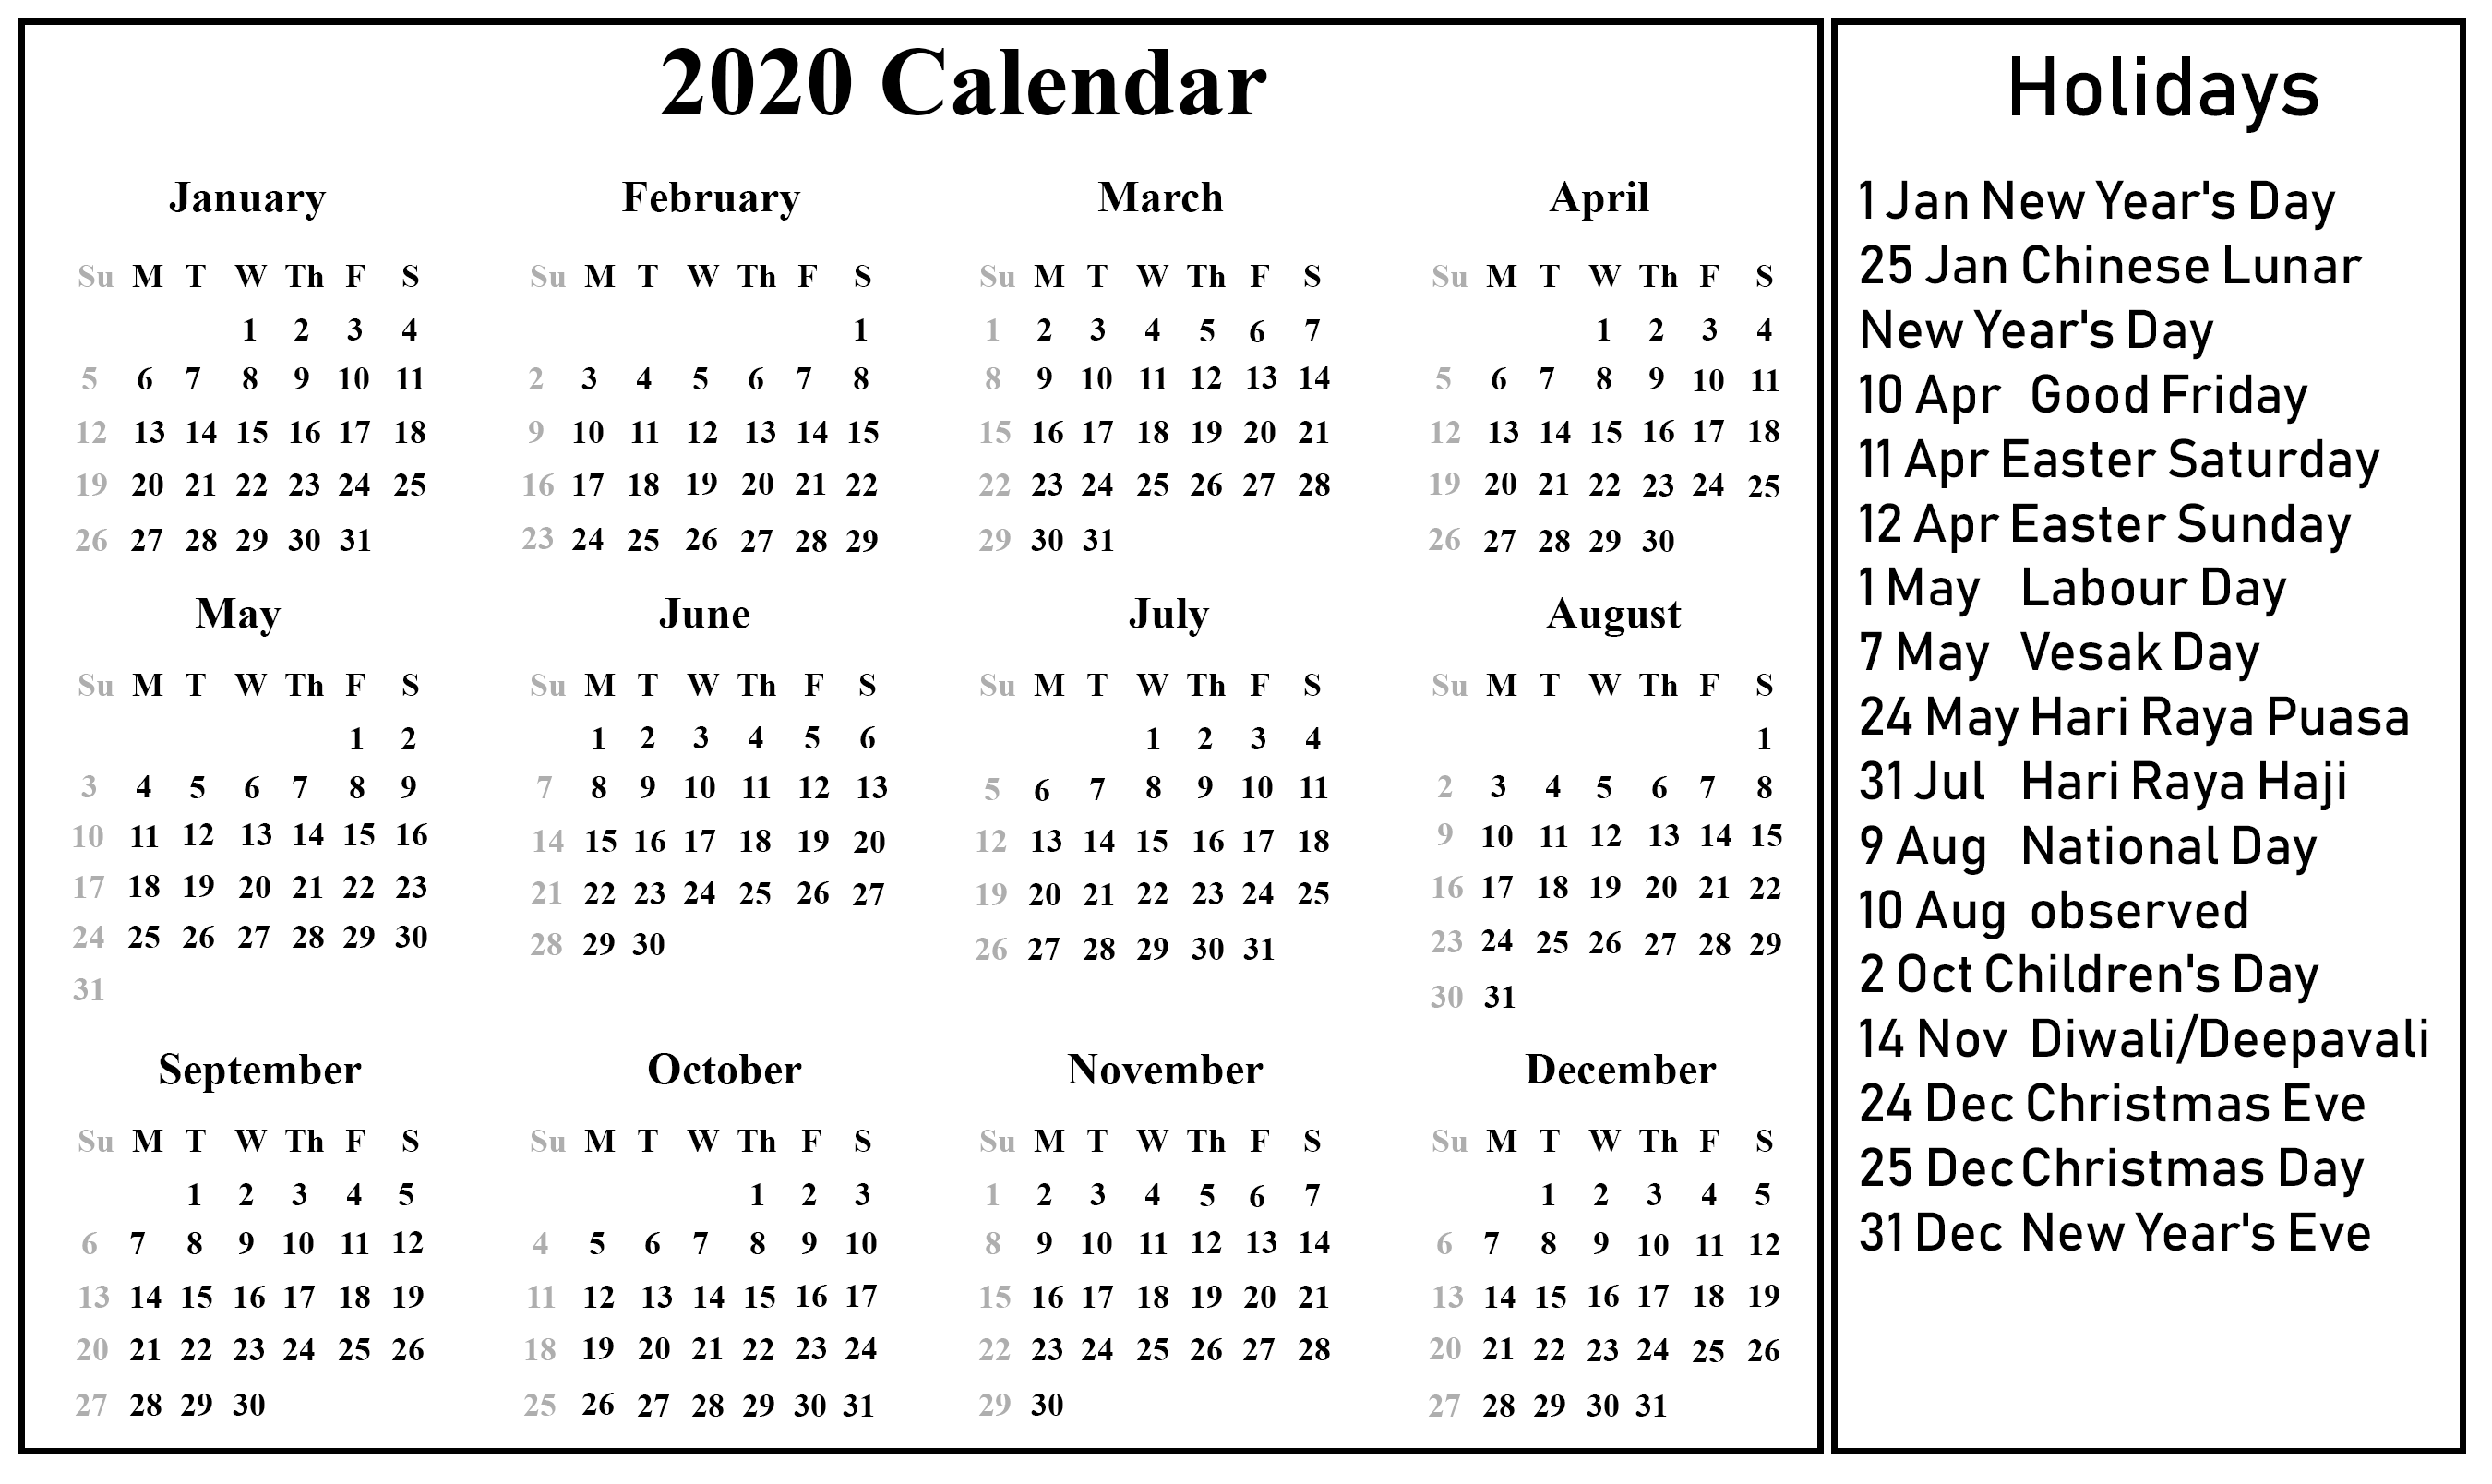 US Holiday Calendar 2020 Templates